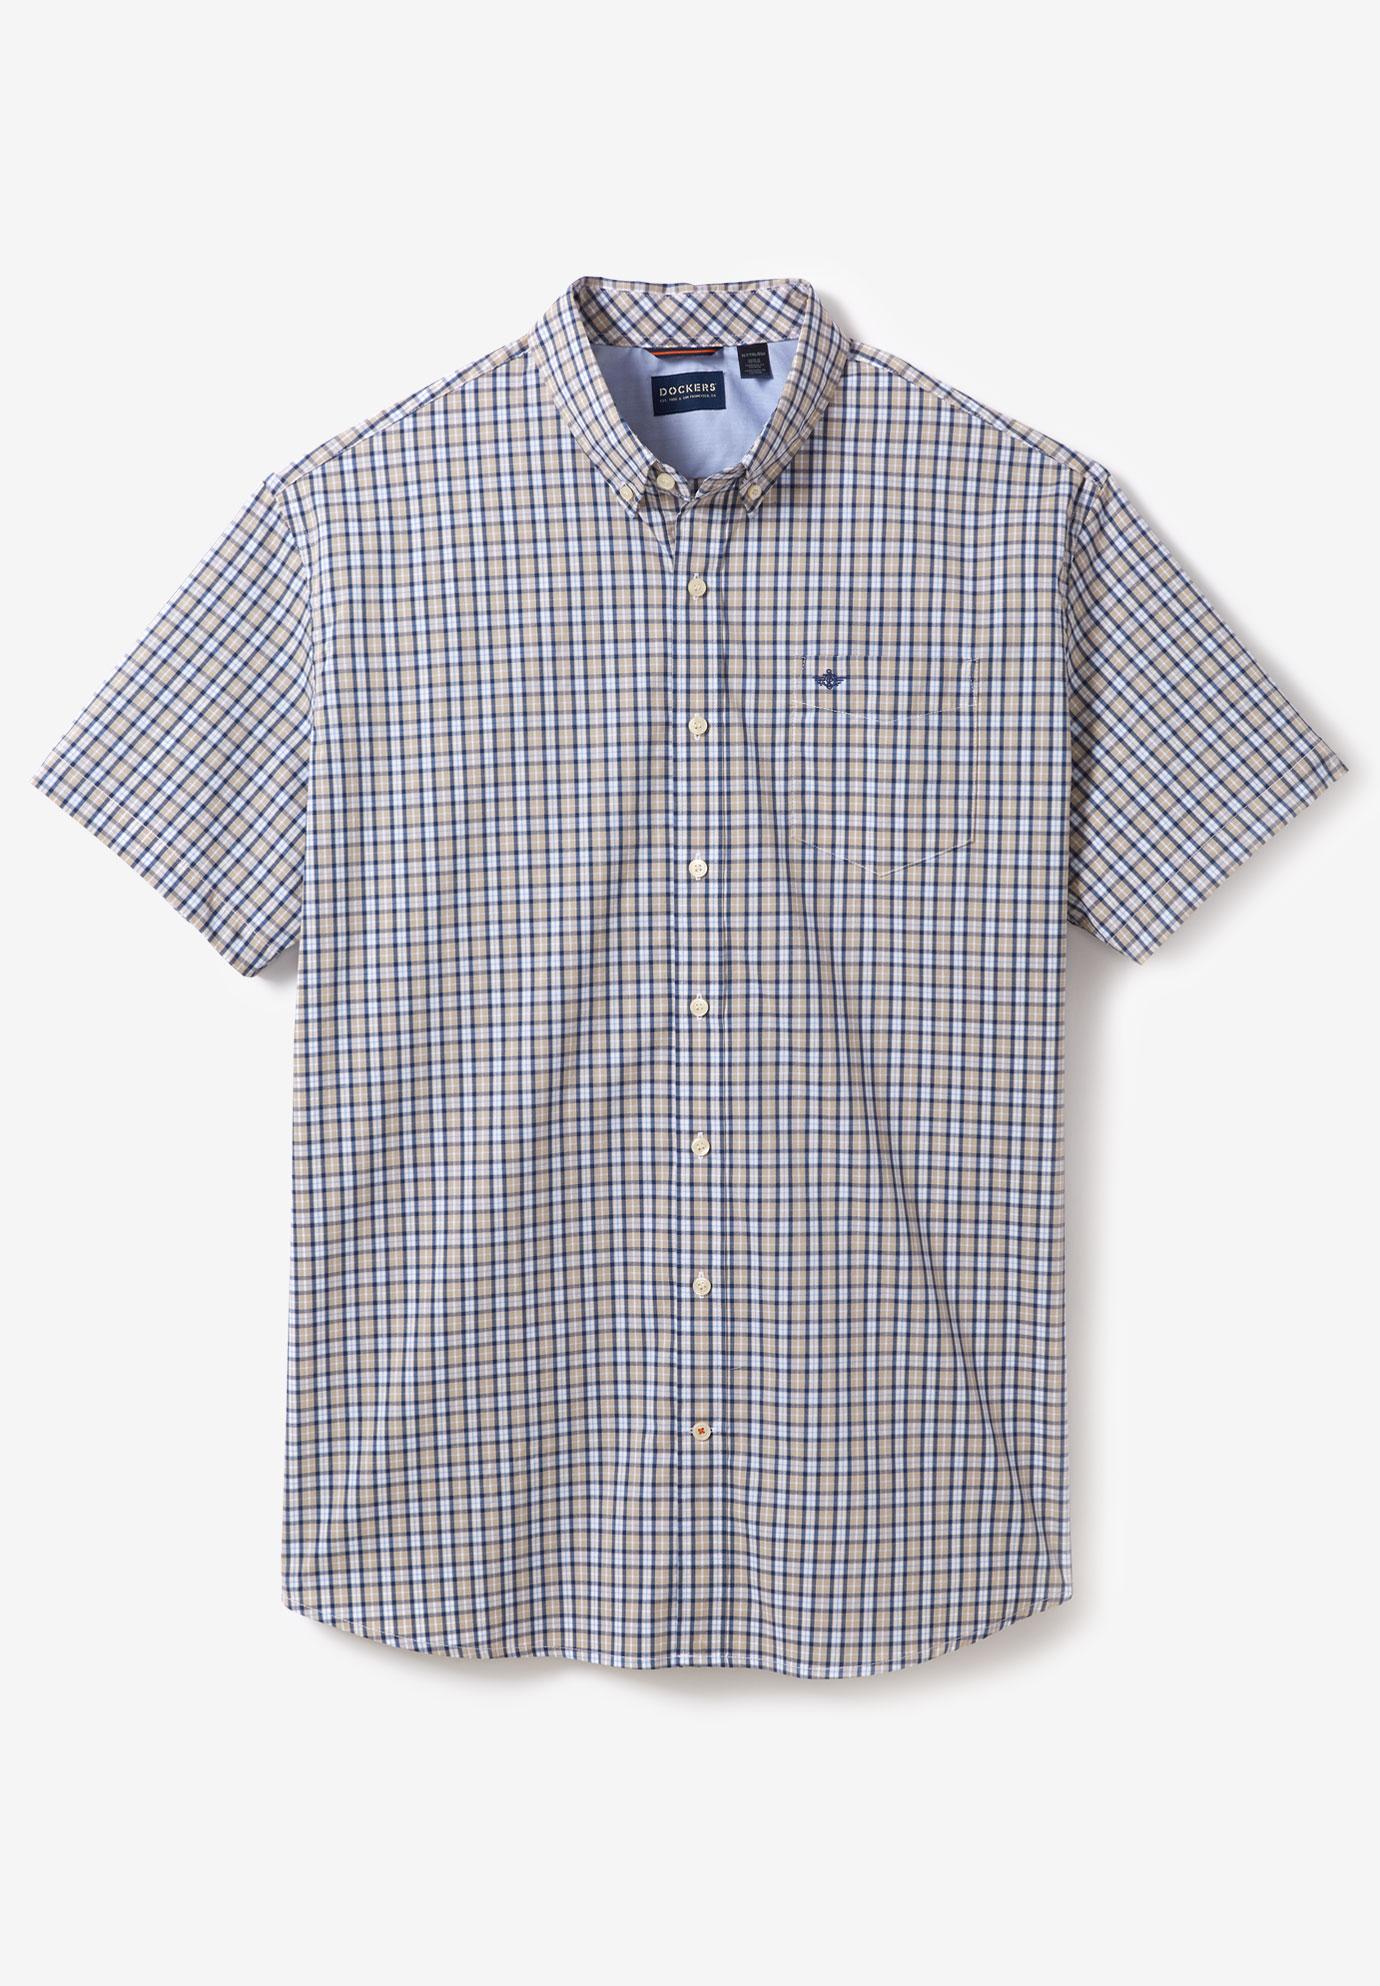 Dockers® Short-Sleeve Comfort Flex Woven Shirt,